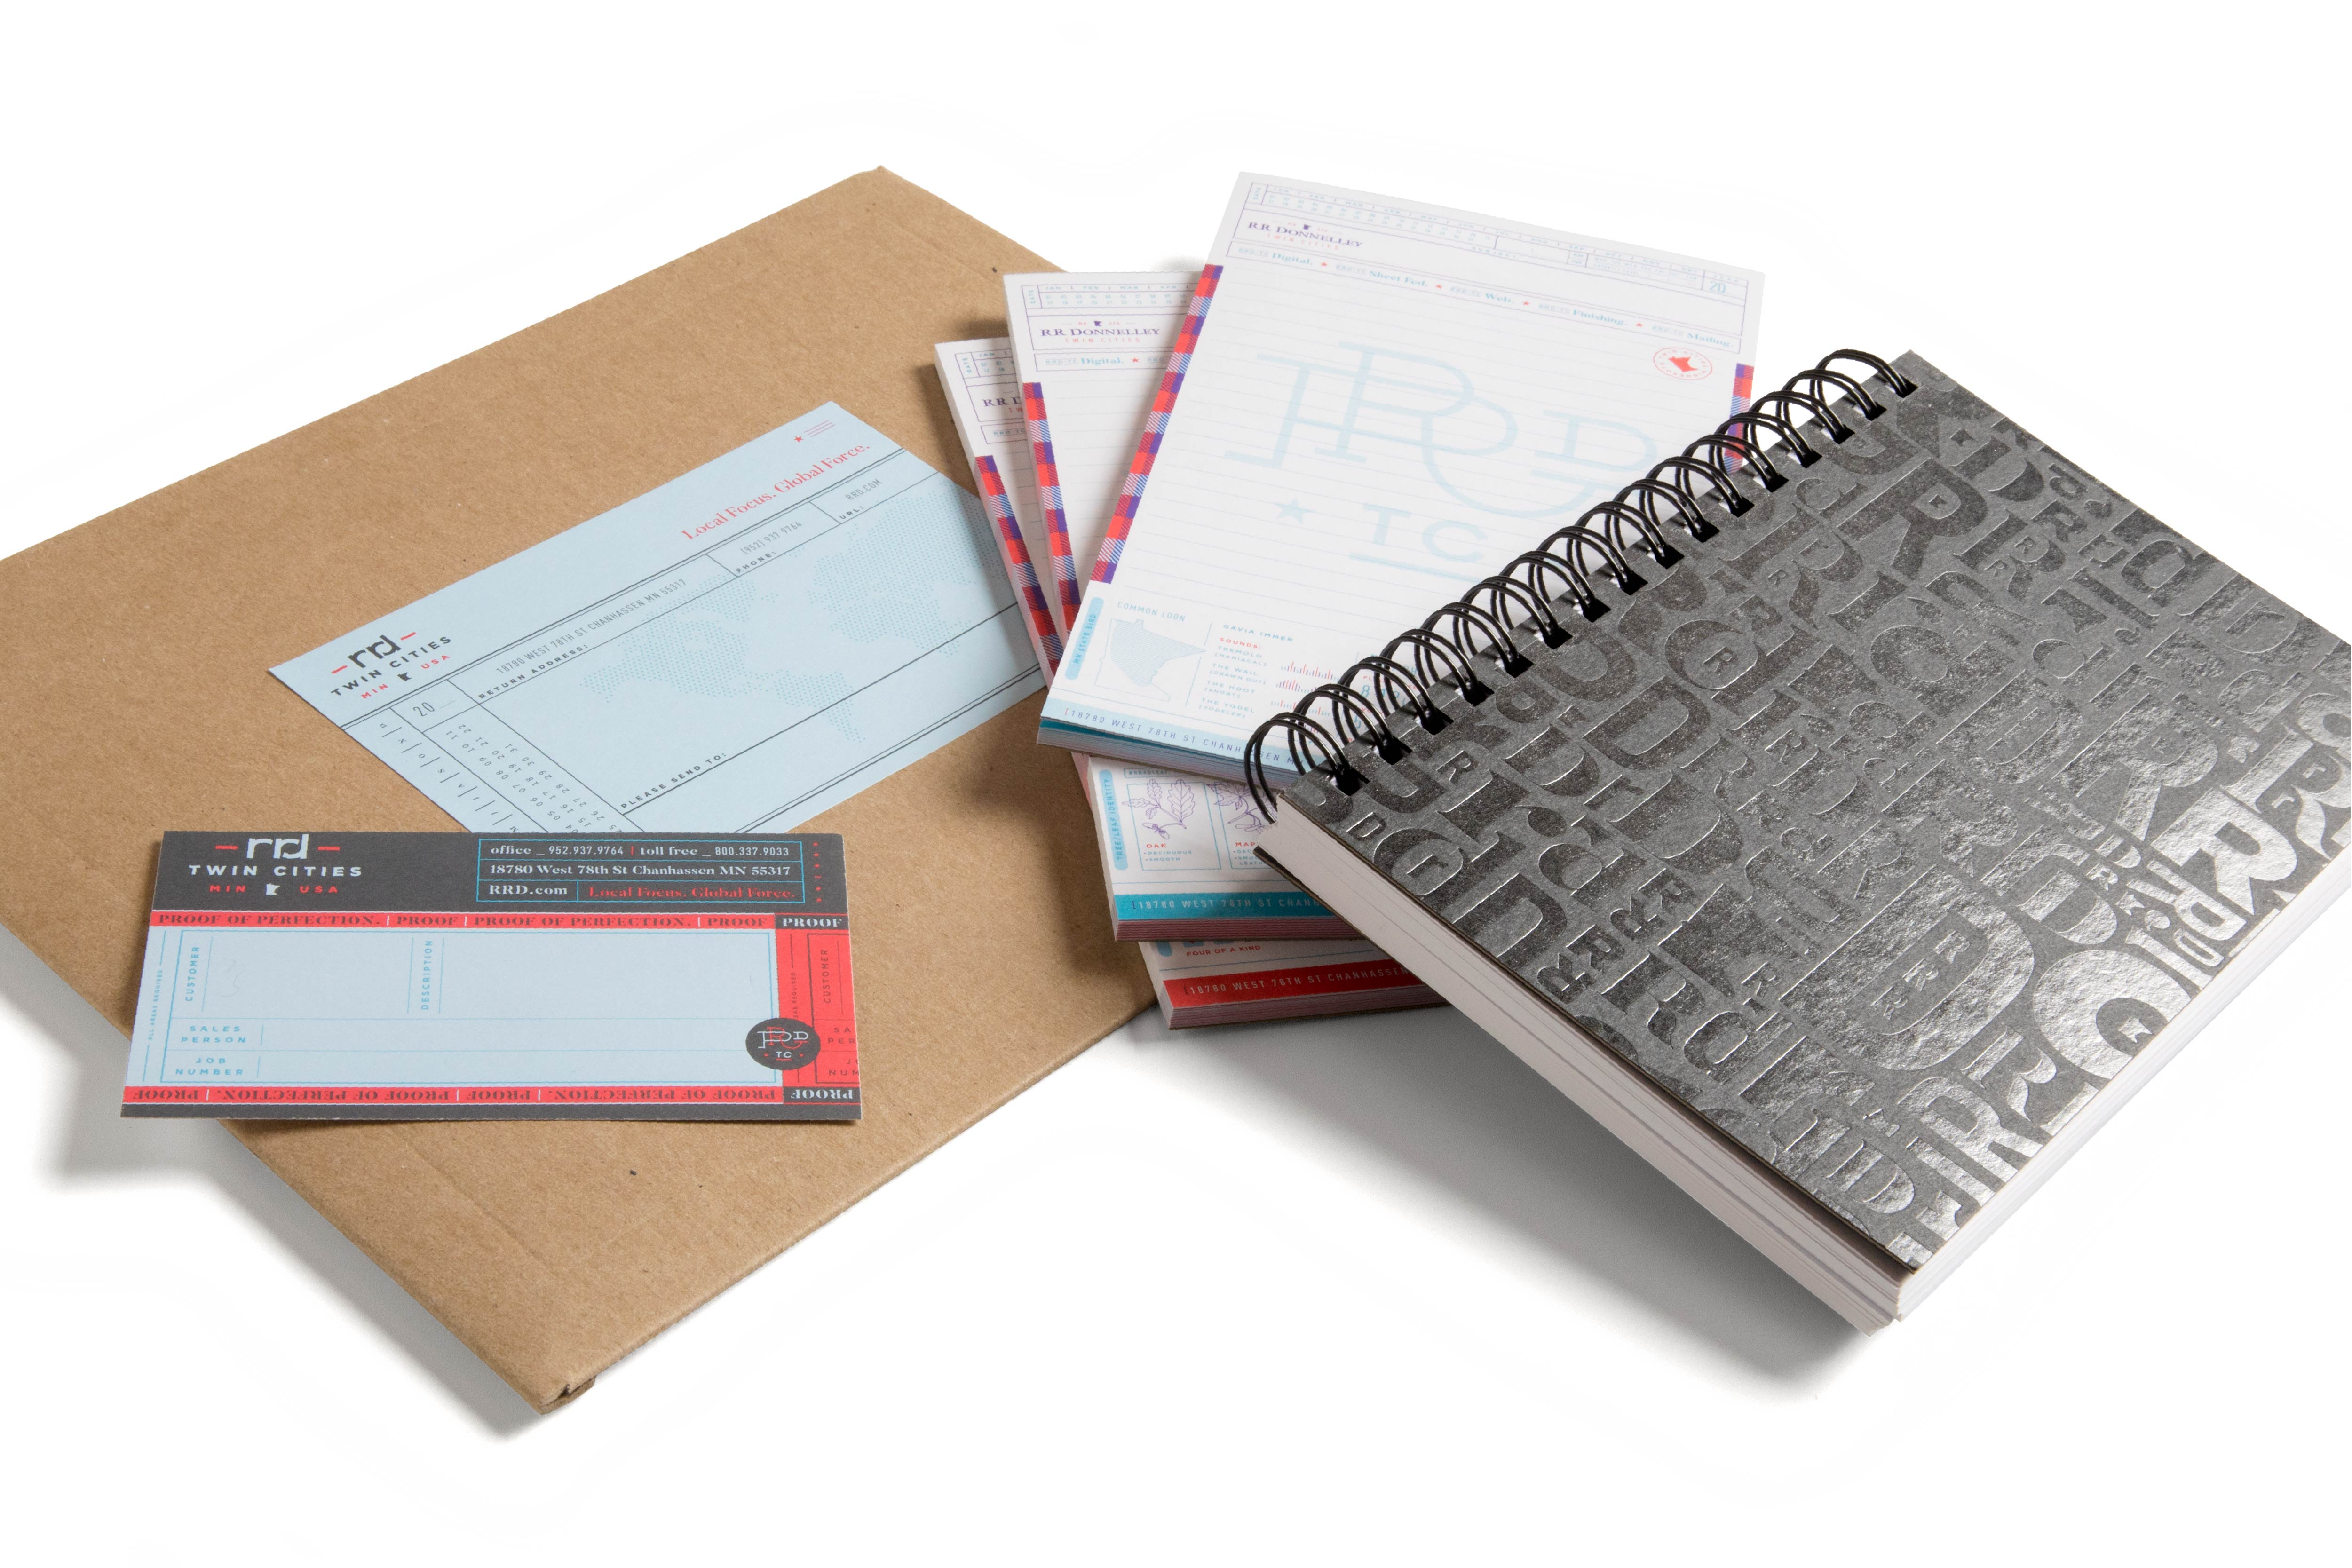 RR Donnelley Stationery